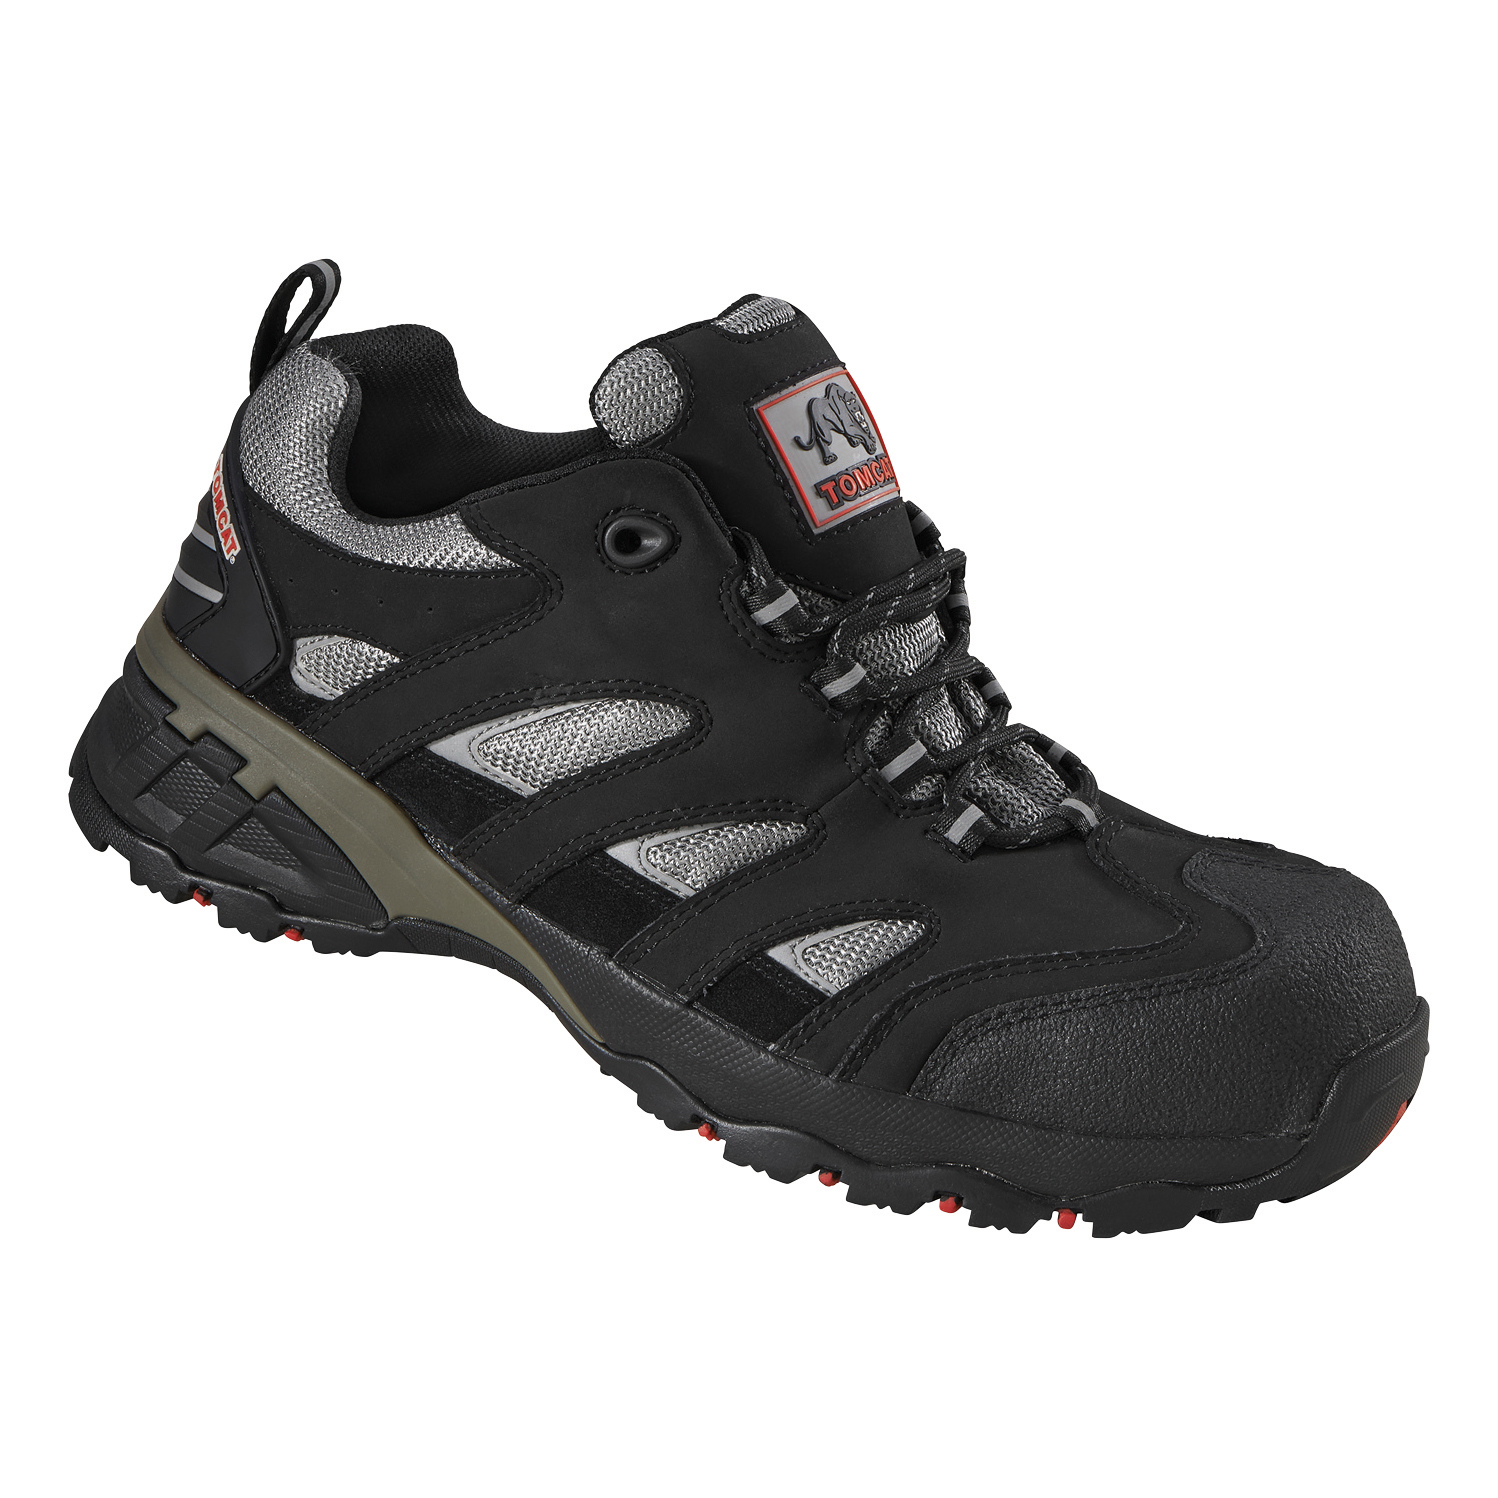 Footwear Rockfall Maine Trainer Fibreglass Toecap & Flexi-Midsole Size 13 Blk/Silv Ref TC130-13 *5-7 Day L/Time*